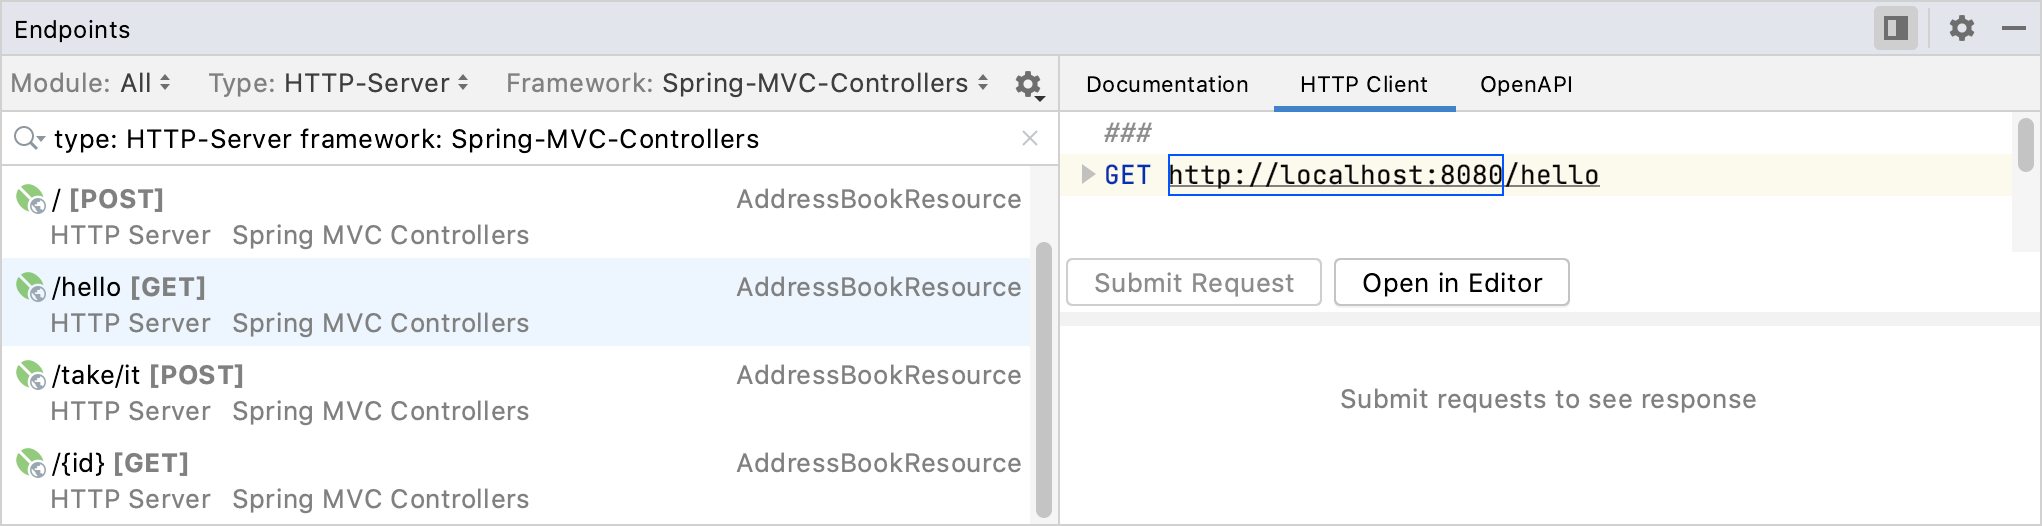 Endpoints tool window: HTTP Client tab